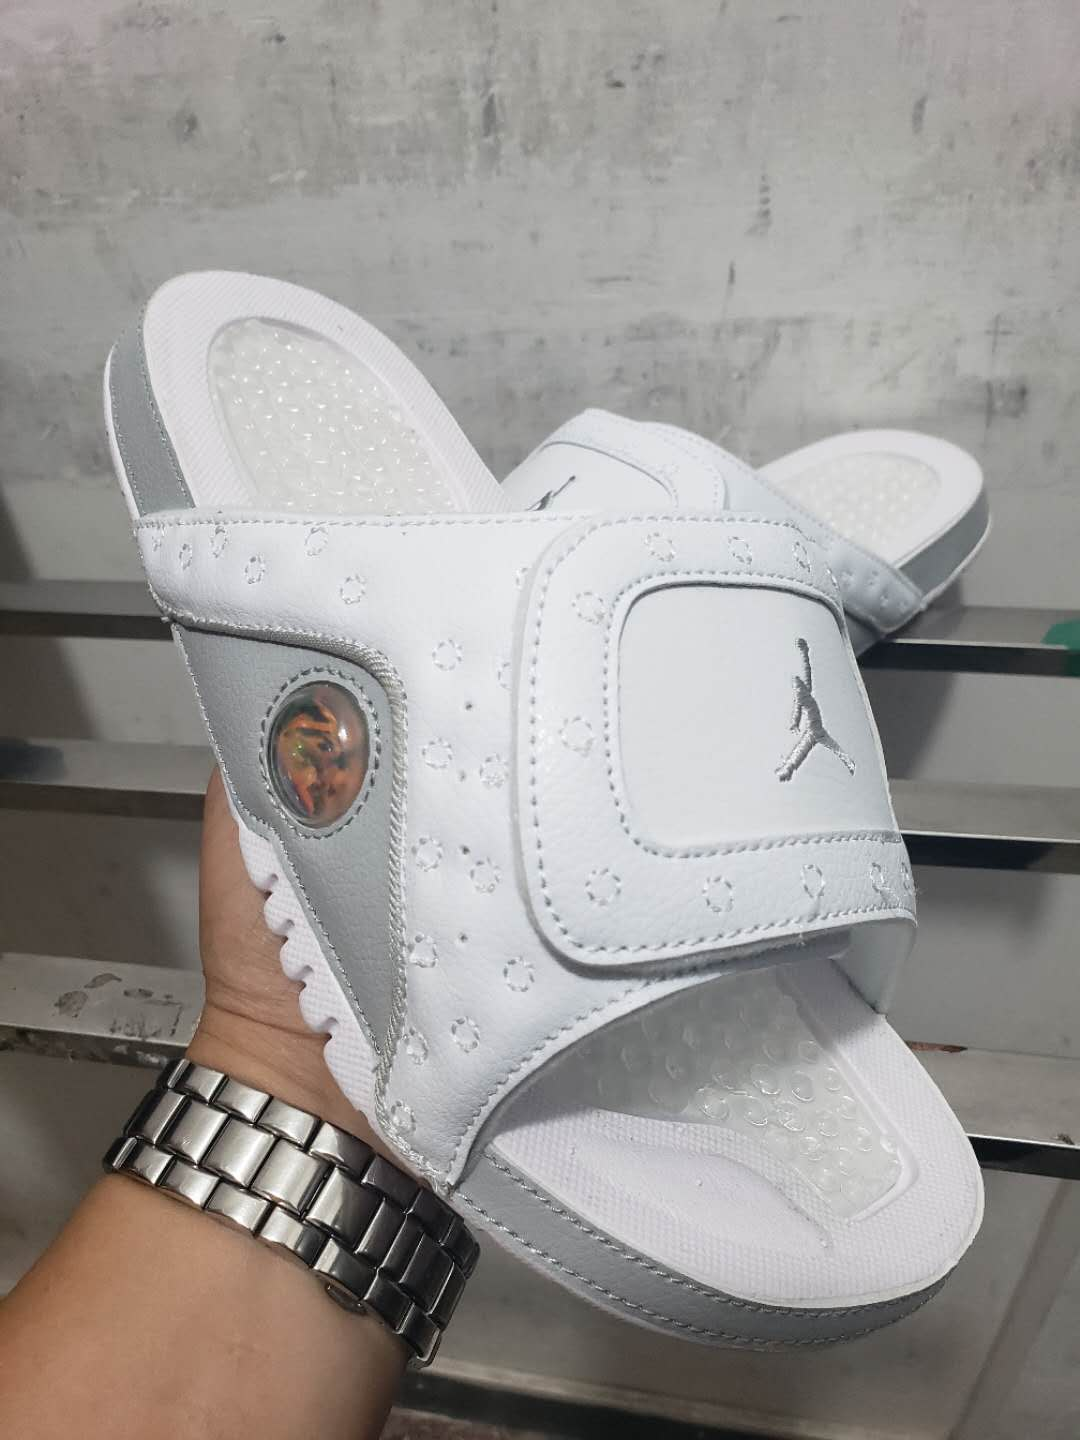 2019 Men Jordan 13 Hydro Slide Pure White